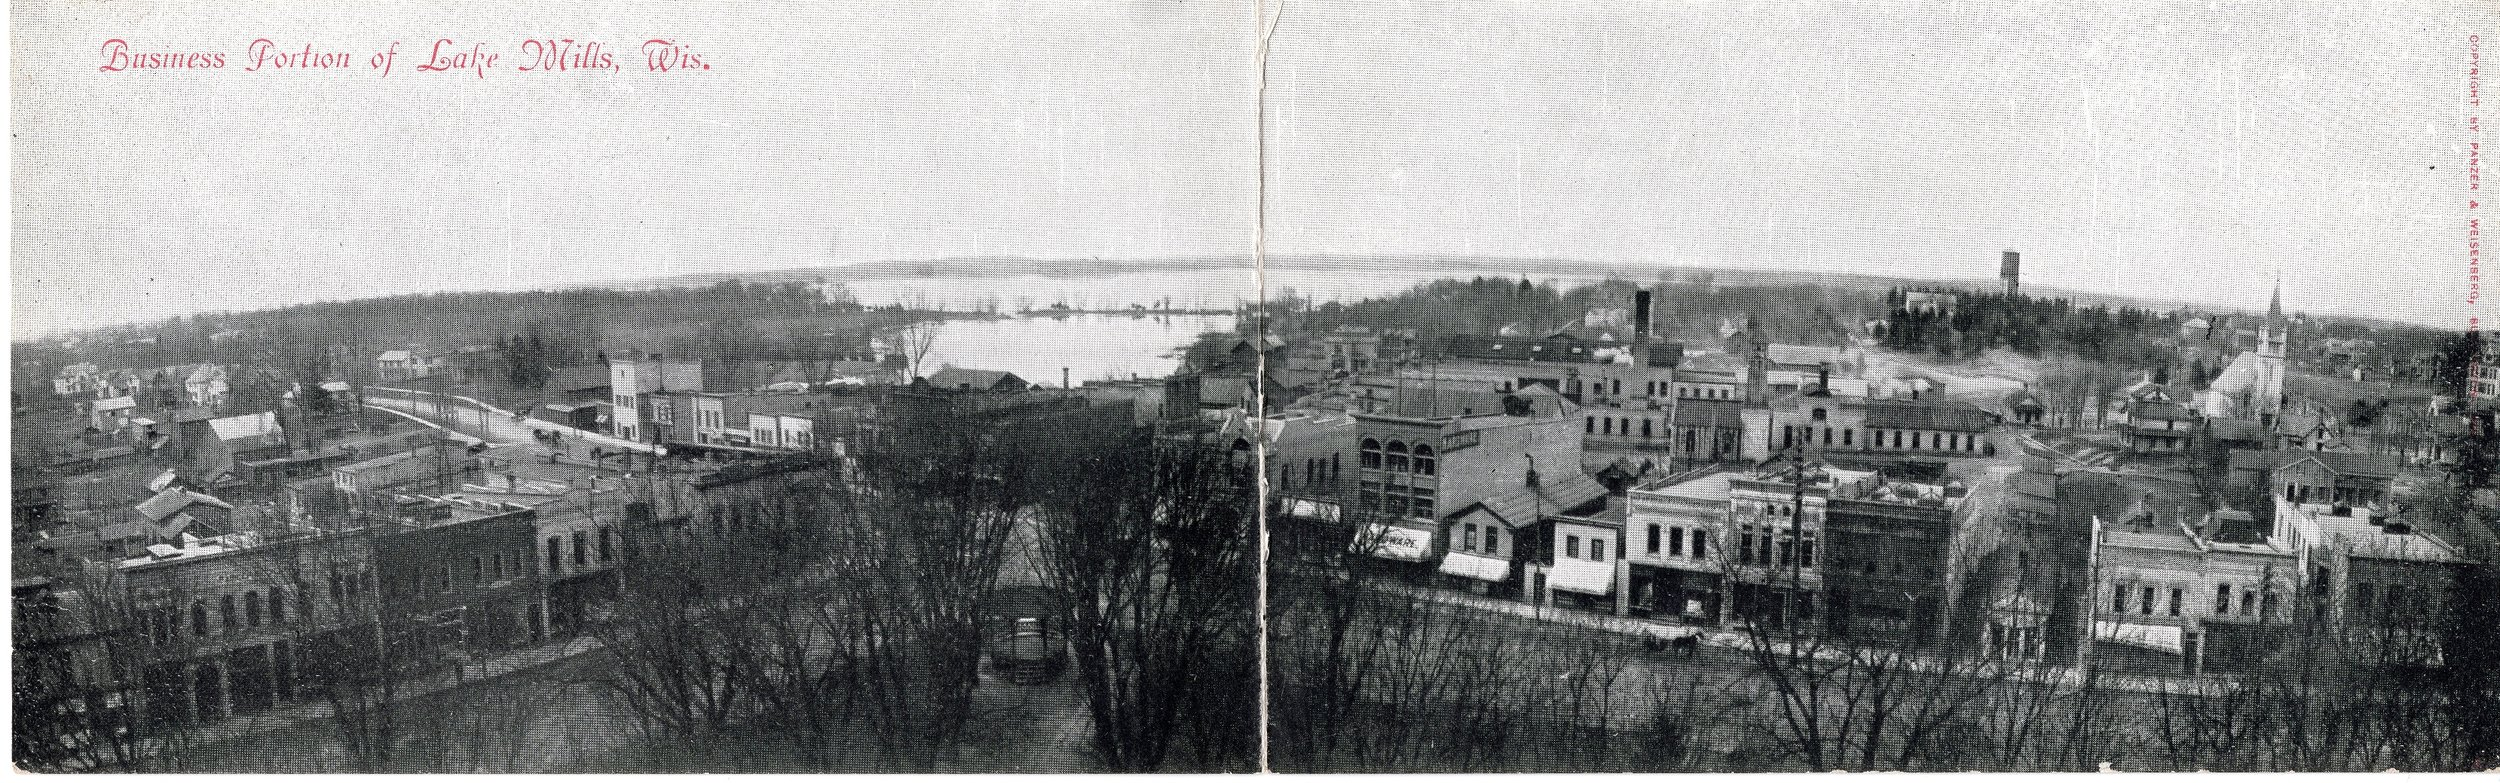 Lake Mills with the 1903 St. Paul Lutheran church building (in white toward the right)